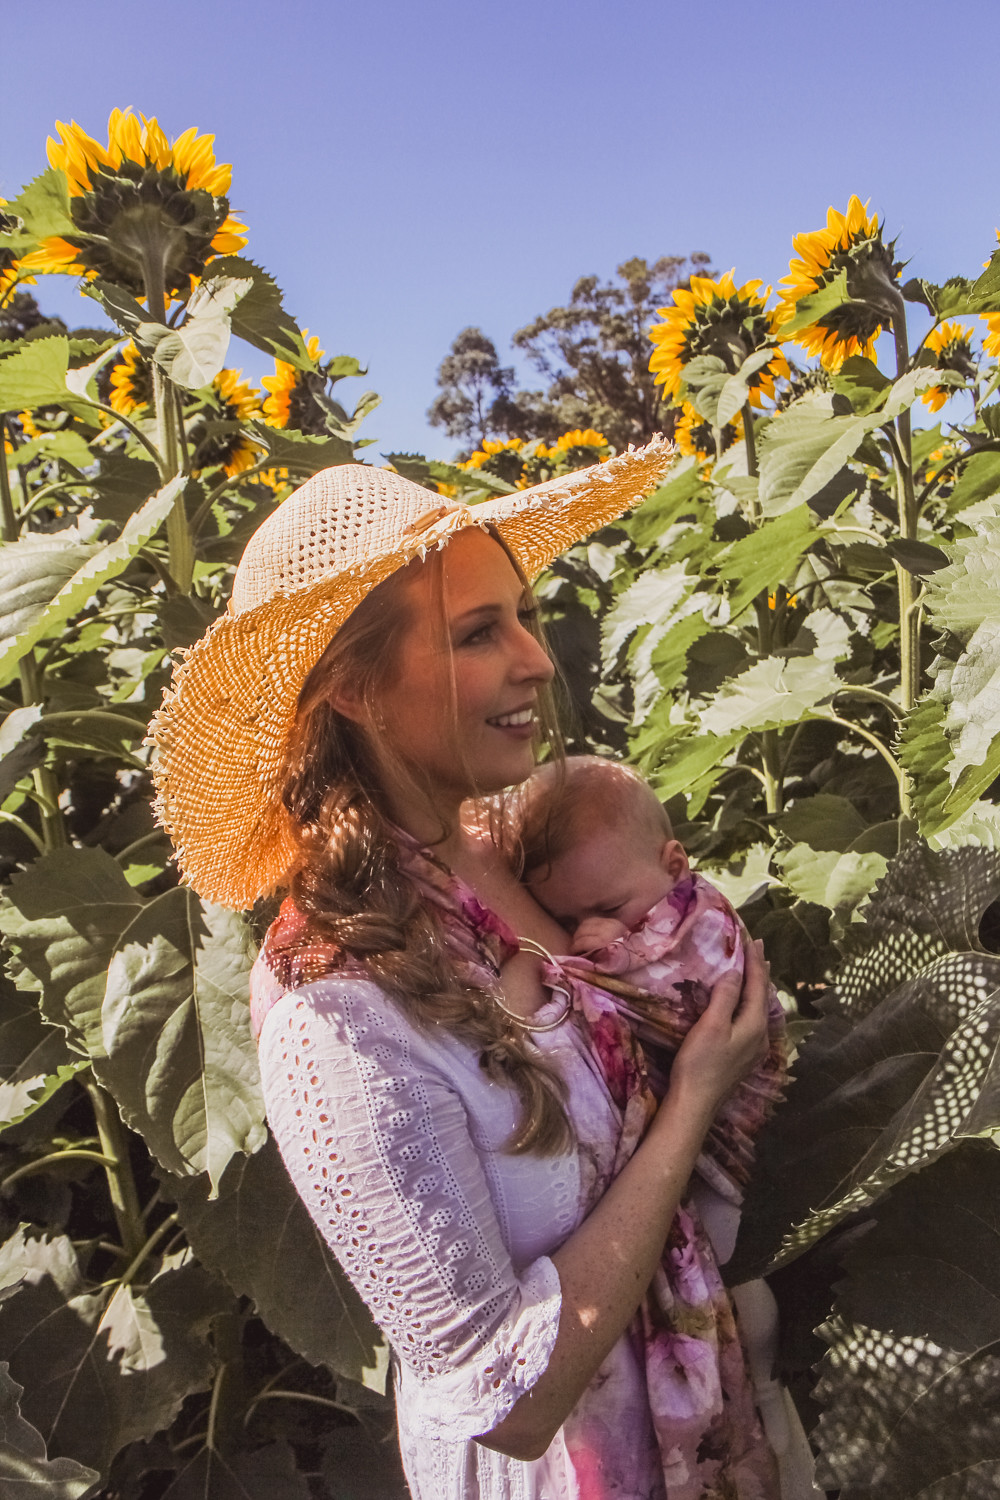 Goldfields Girl at sunflower farm in Ballarat in Victoria. Wearing white eyelet dress, straw hat and ping ring sling baby carrier.